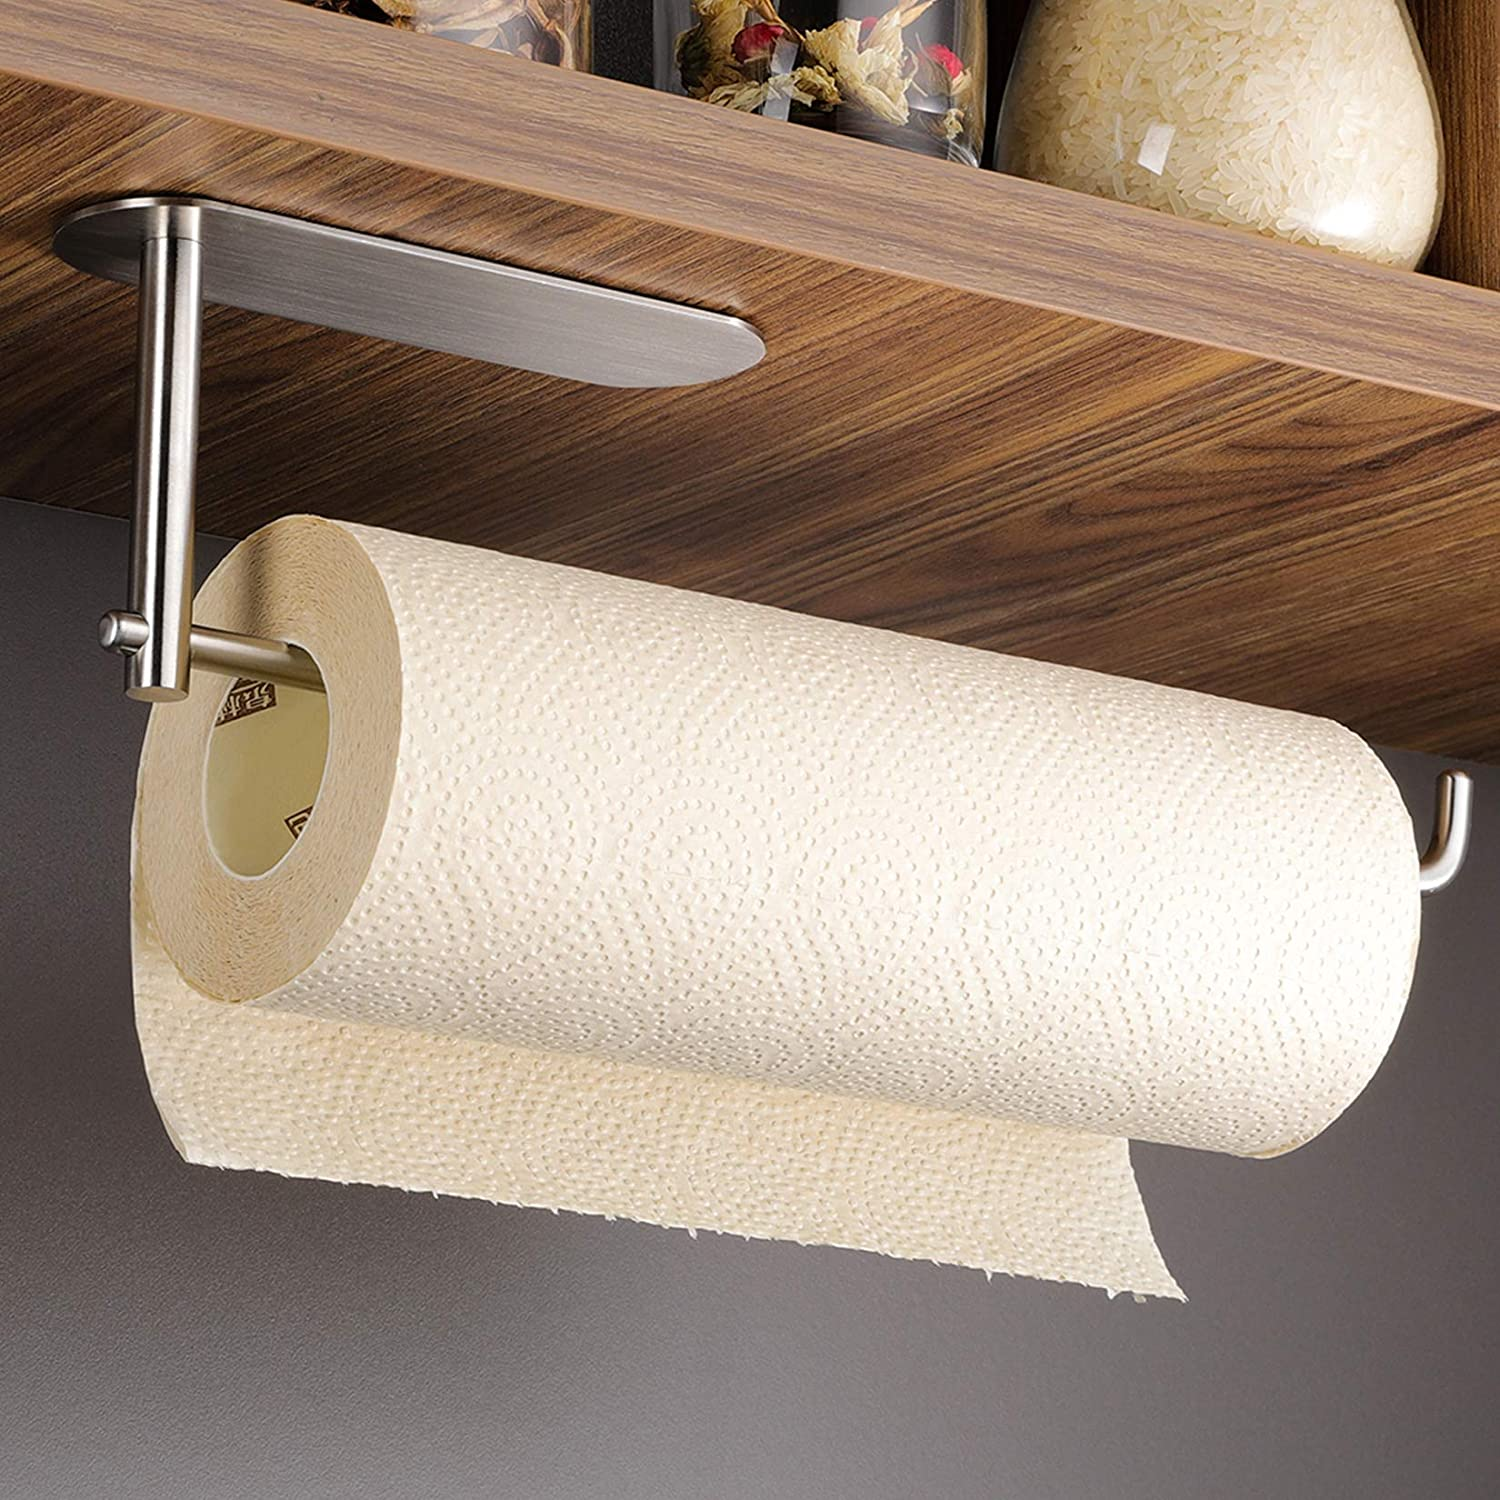 DELITON Paper Towel Holder Cabinet - Free shipping / New Max 71% OFF Adhesive Under